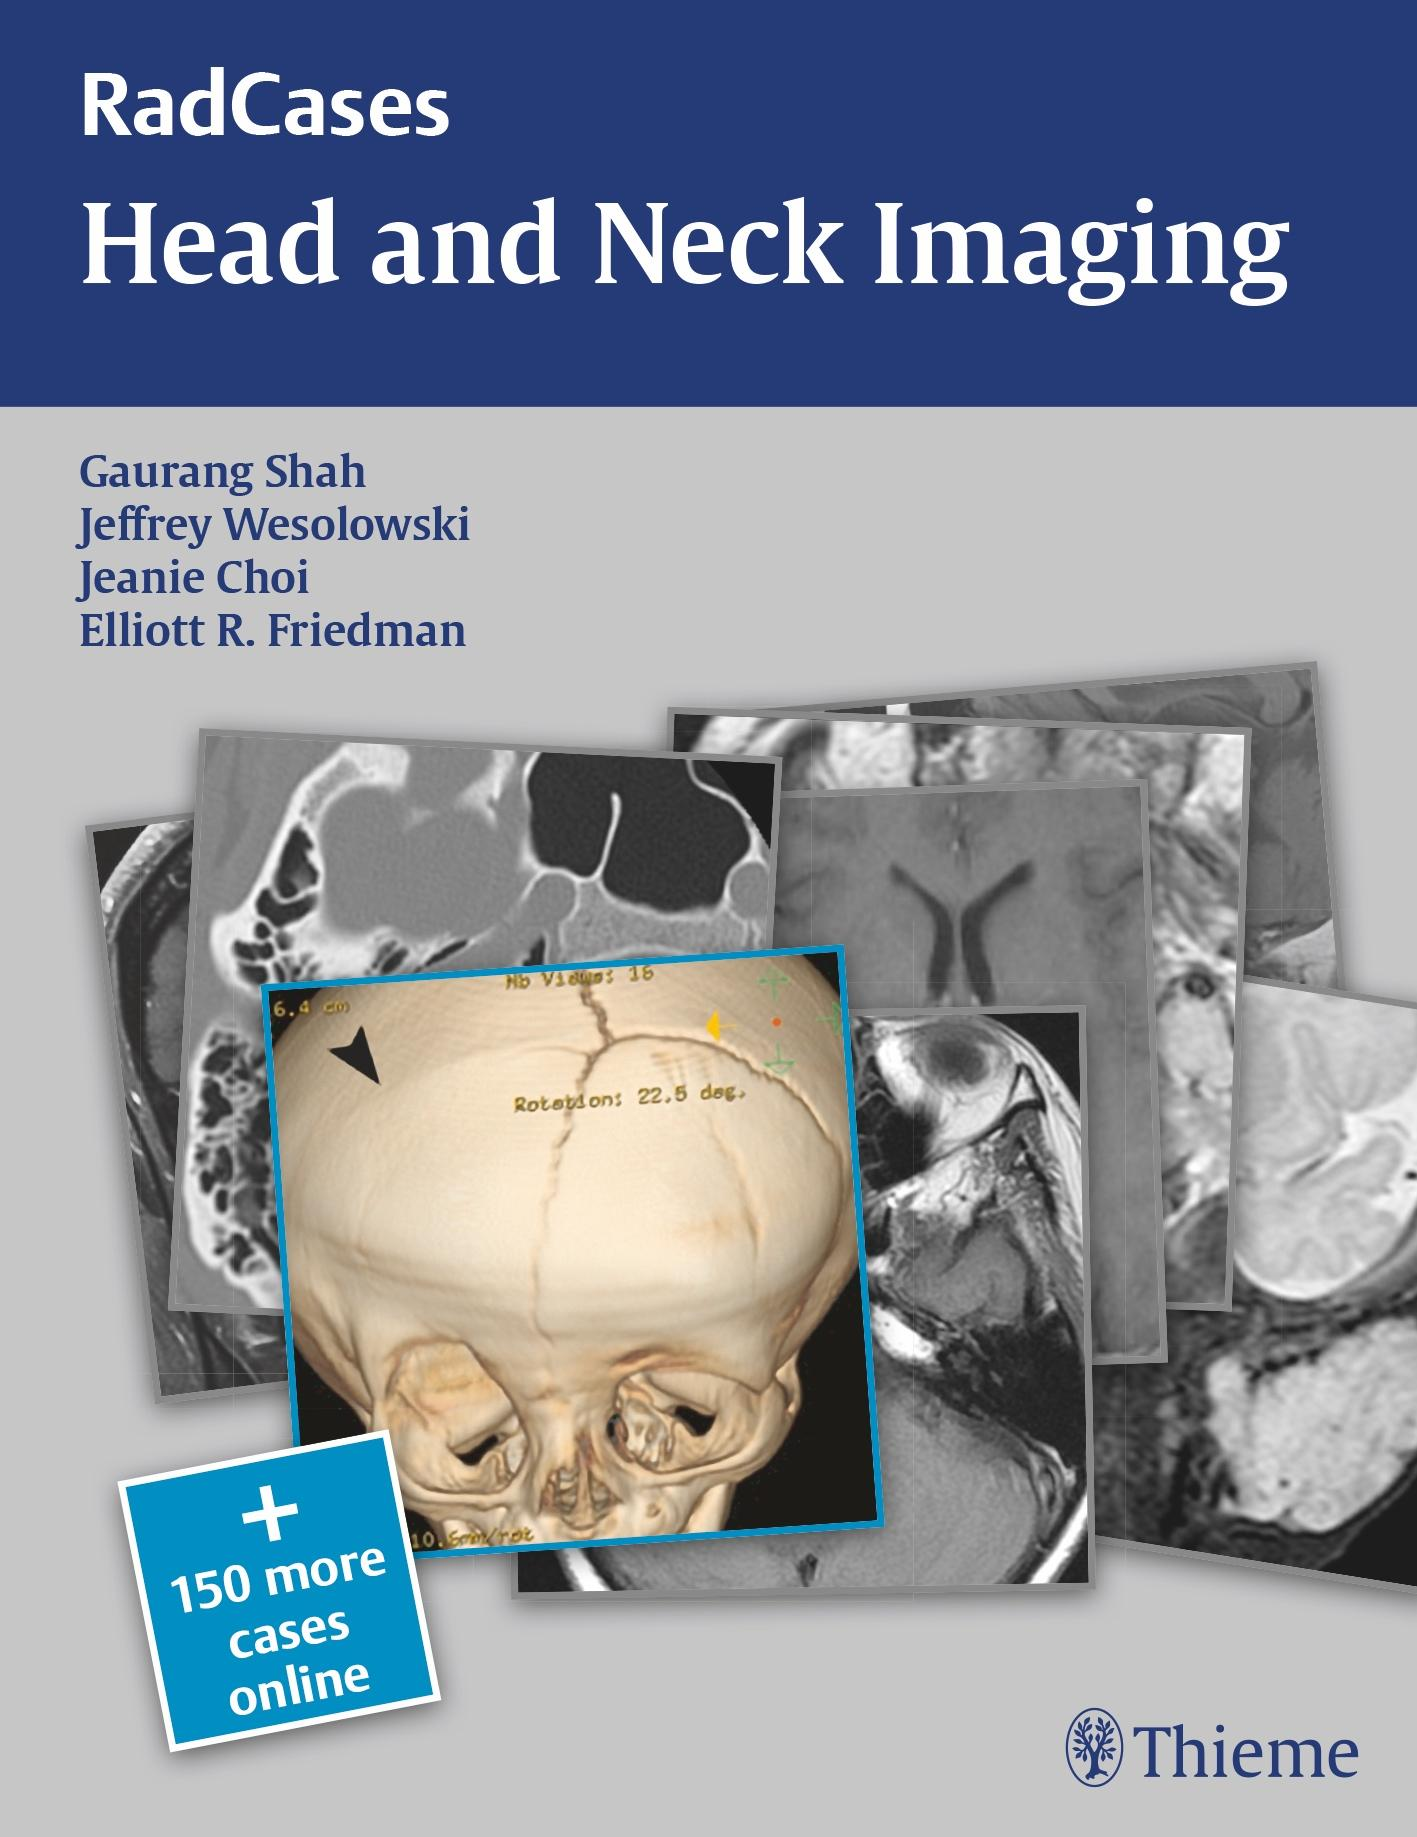 RadCases: Head and Neck Imaging